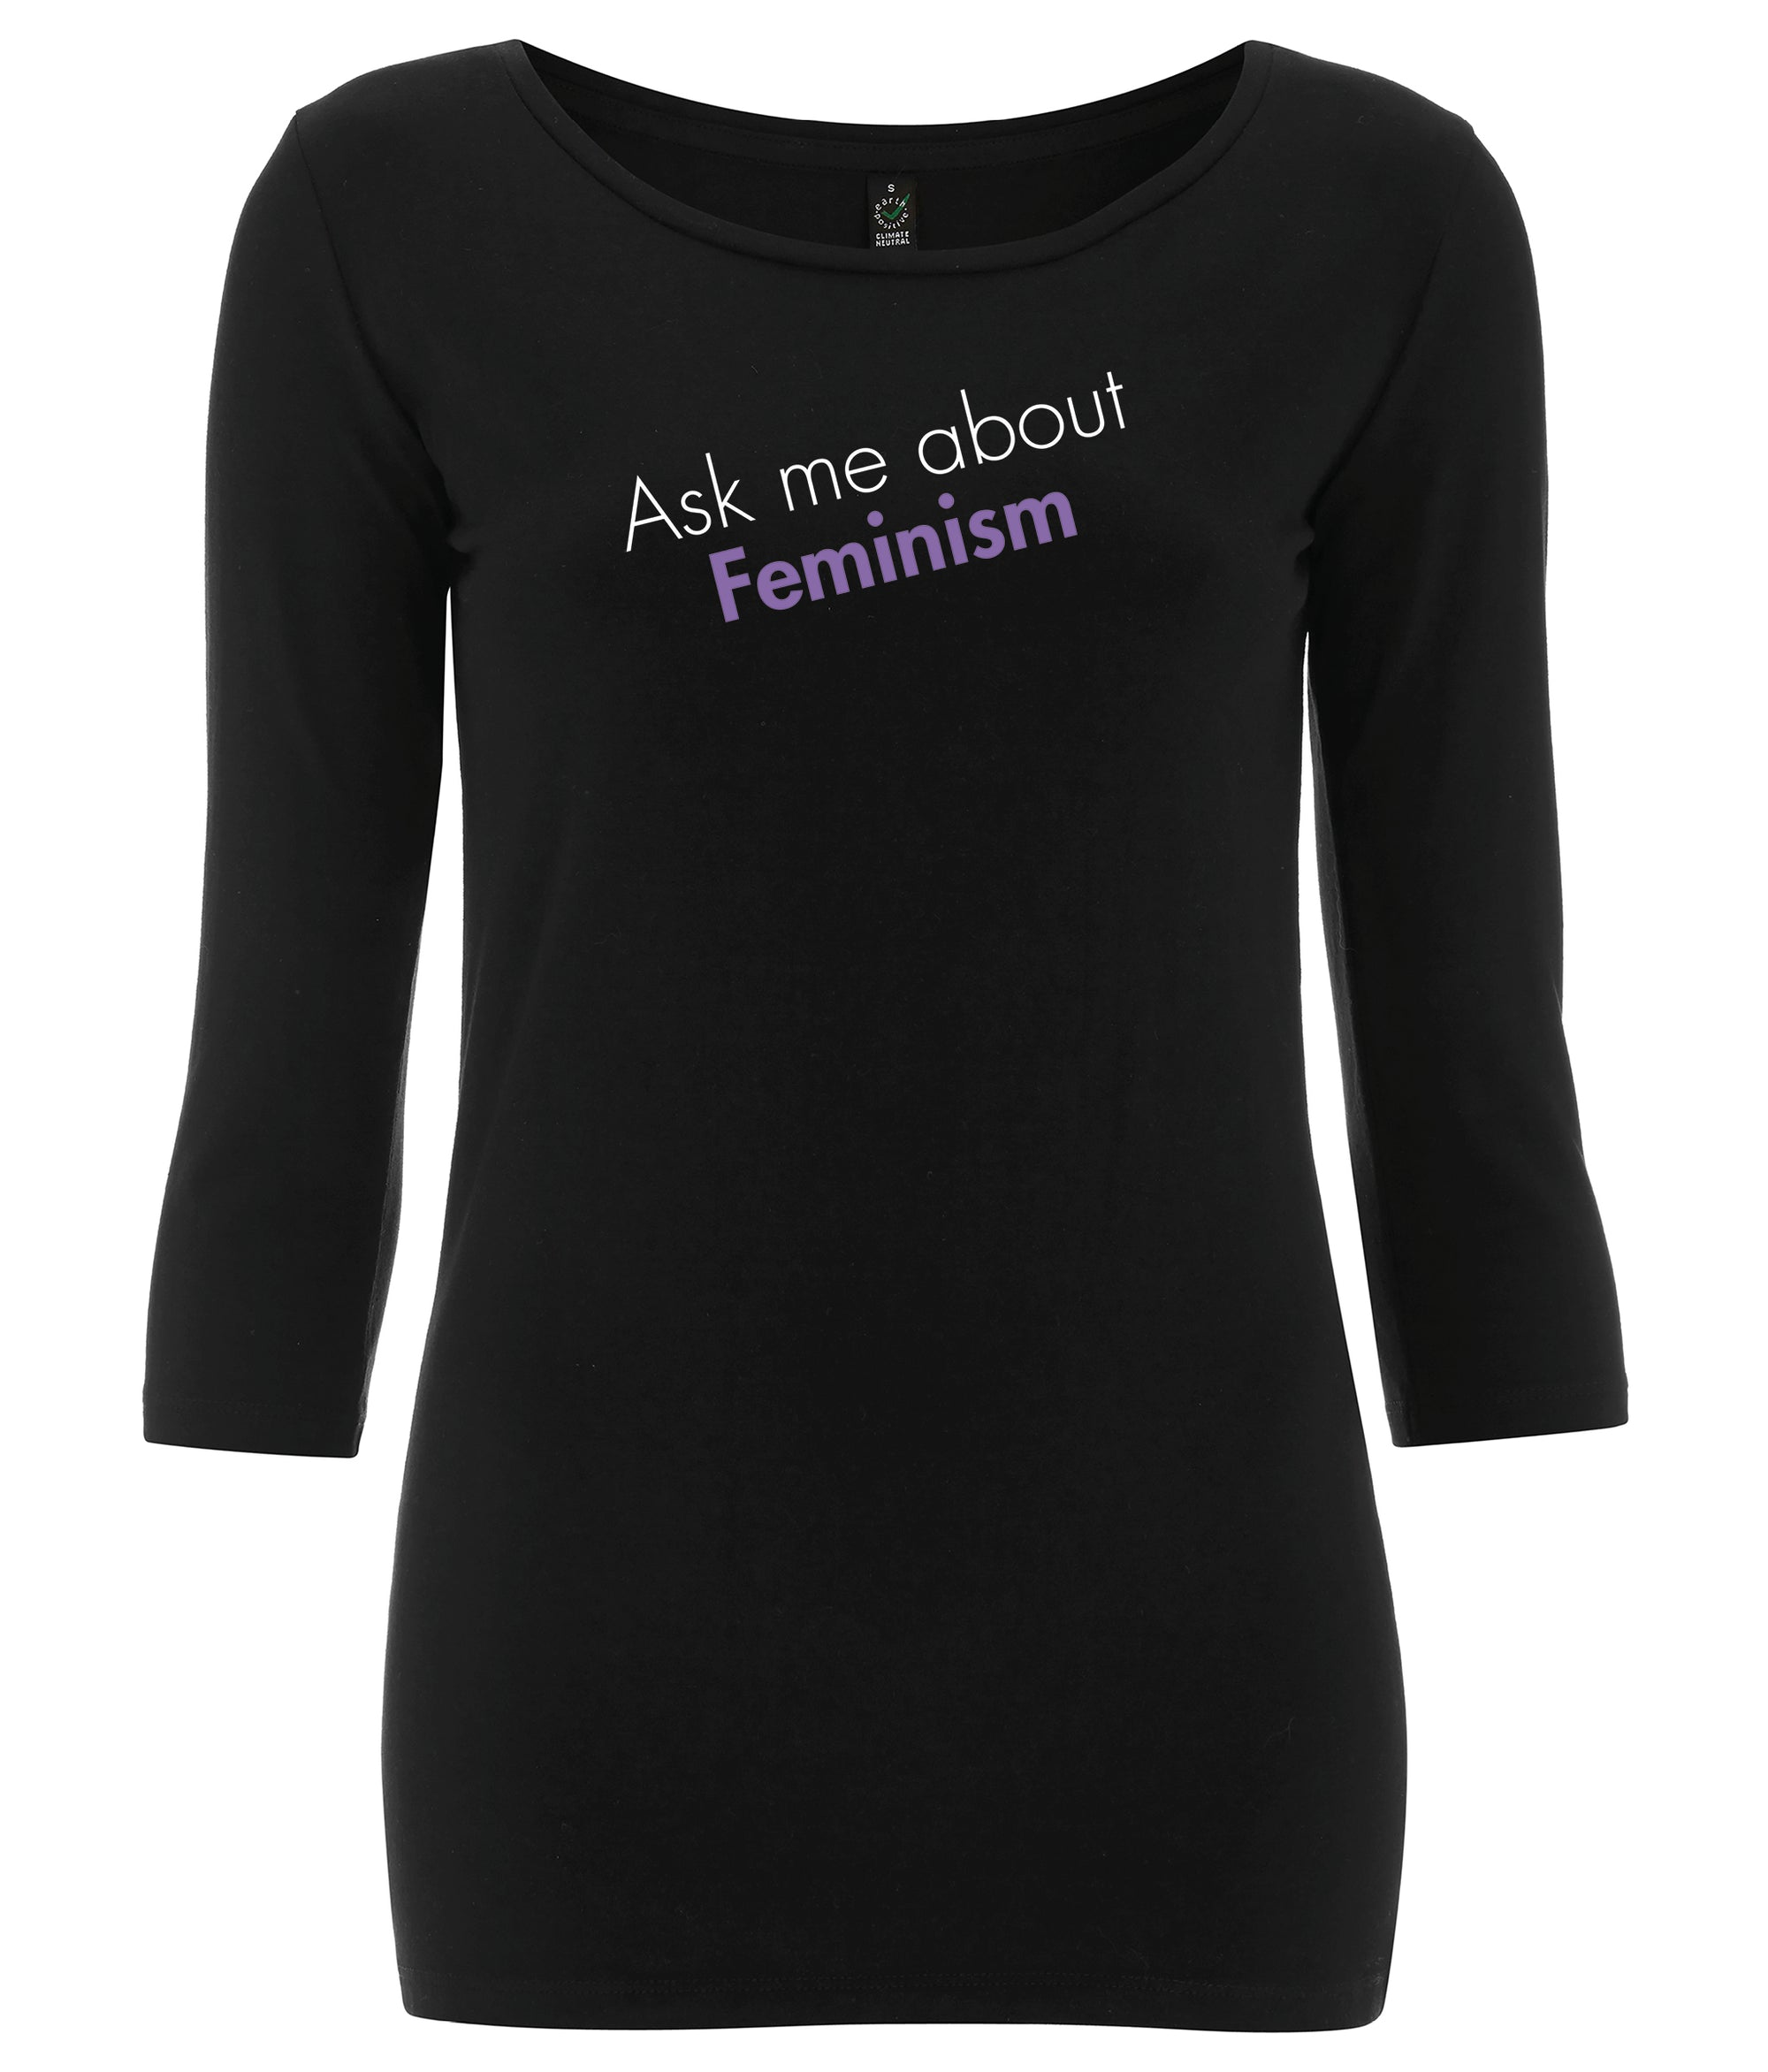 Ask Me About Feminism 3/4 Sleeve Organic Feminist T Shirt Black